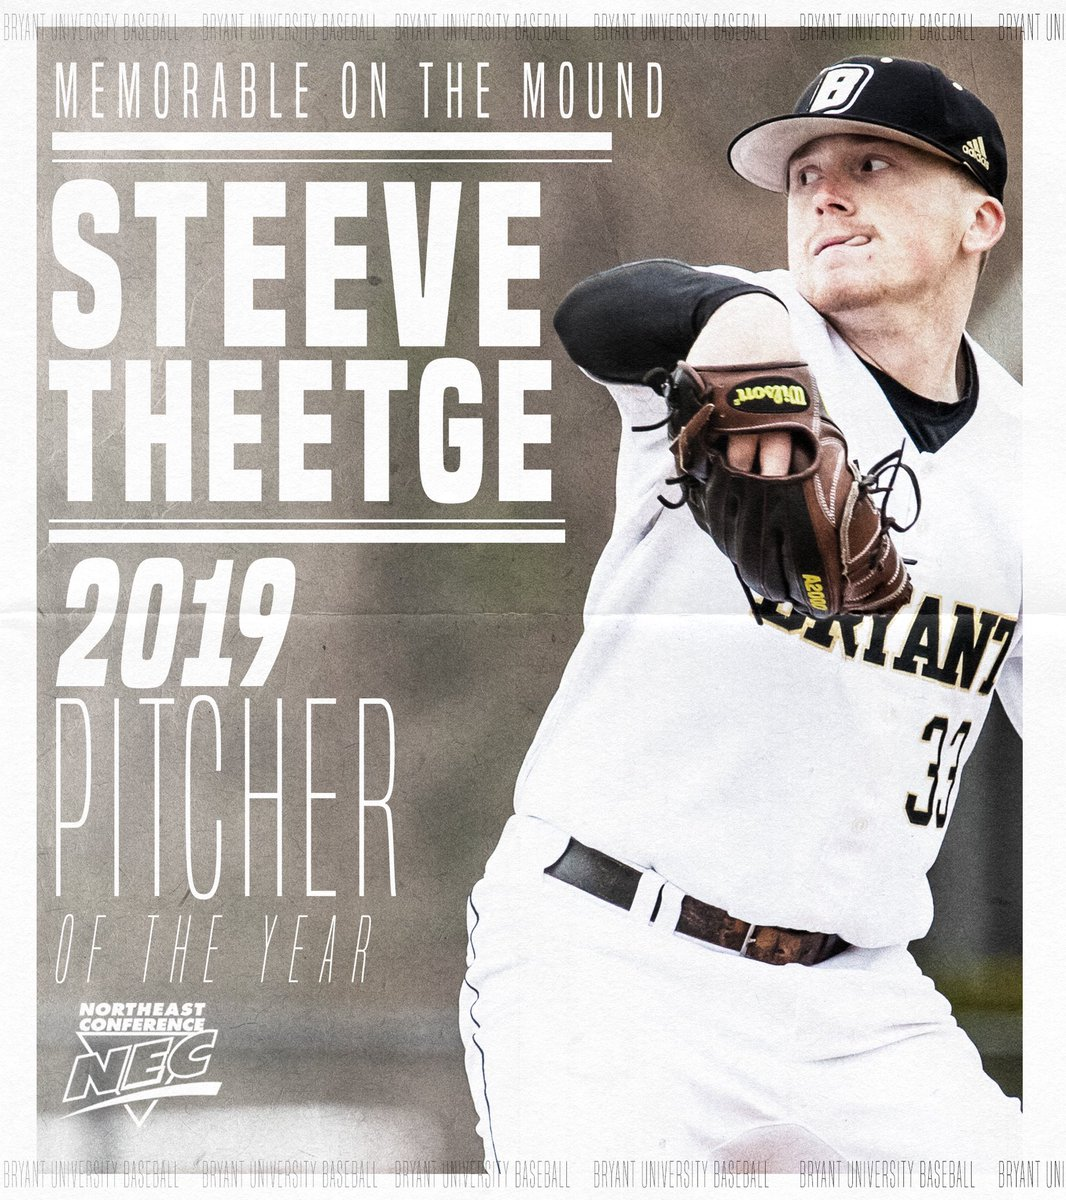 Congrats to @theetge_17 on being named NEC Pitcher of the Year!  He is the first pitcher in NEC history to win the award multiple times (2017, 2019)!   #TCD